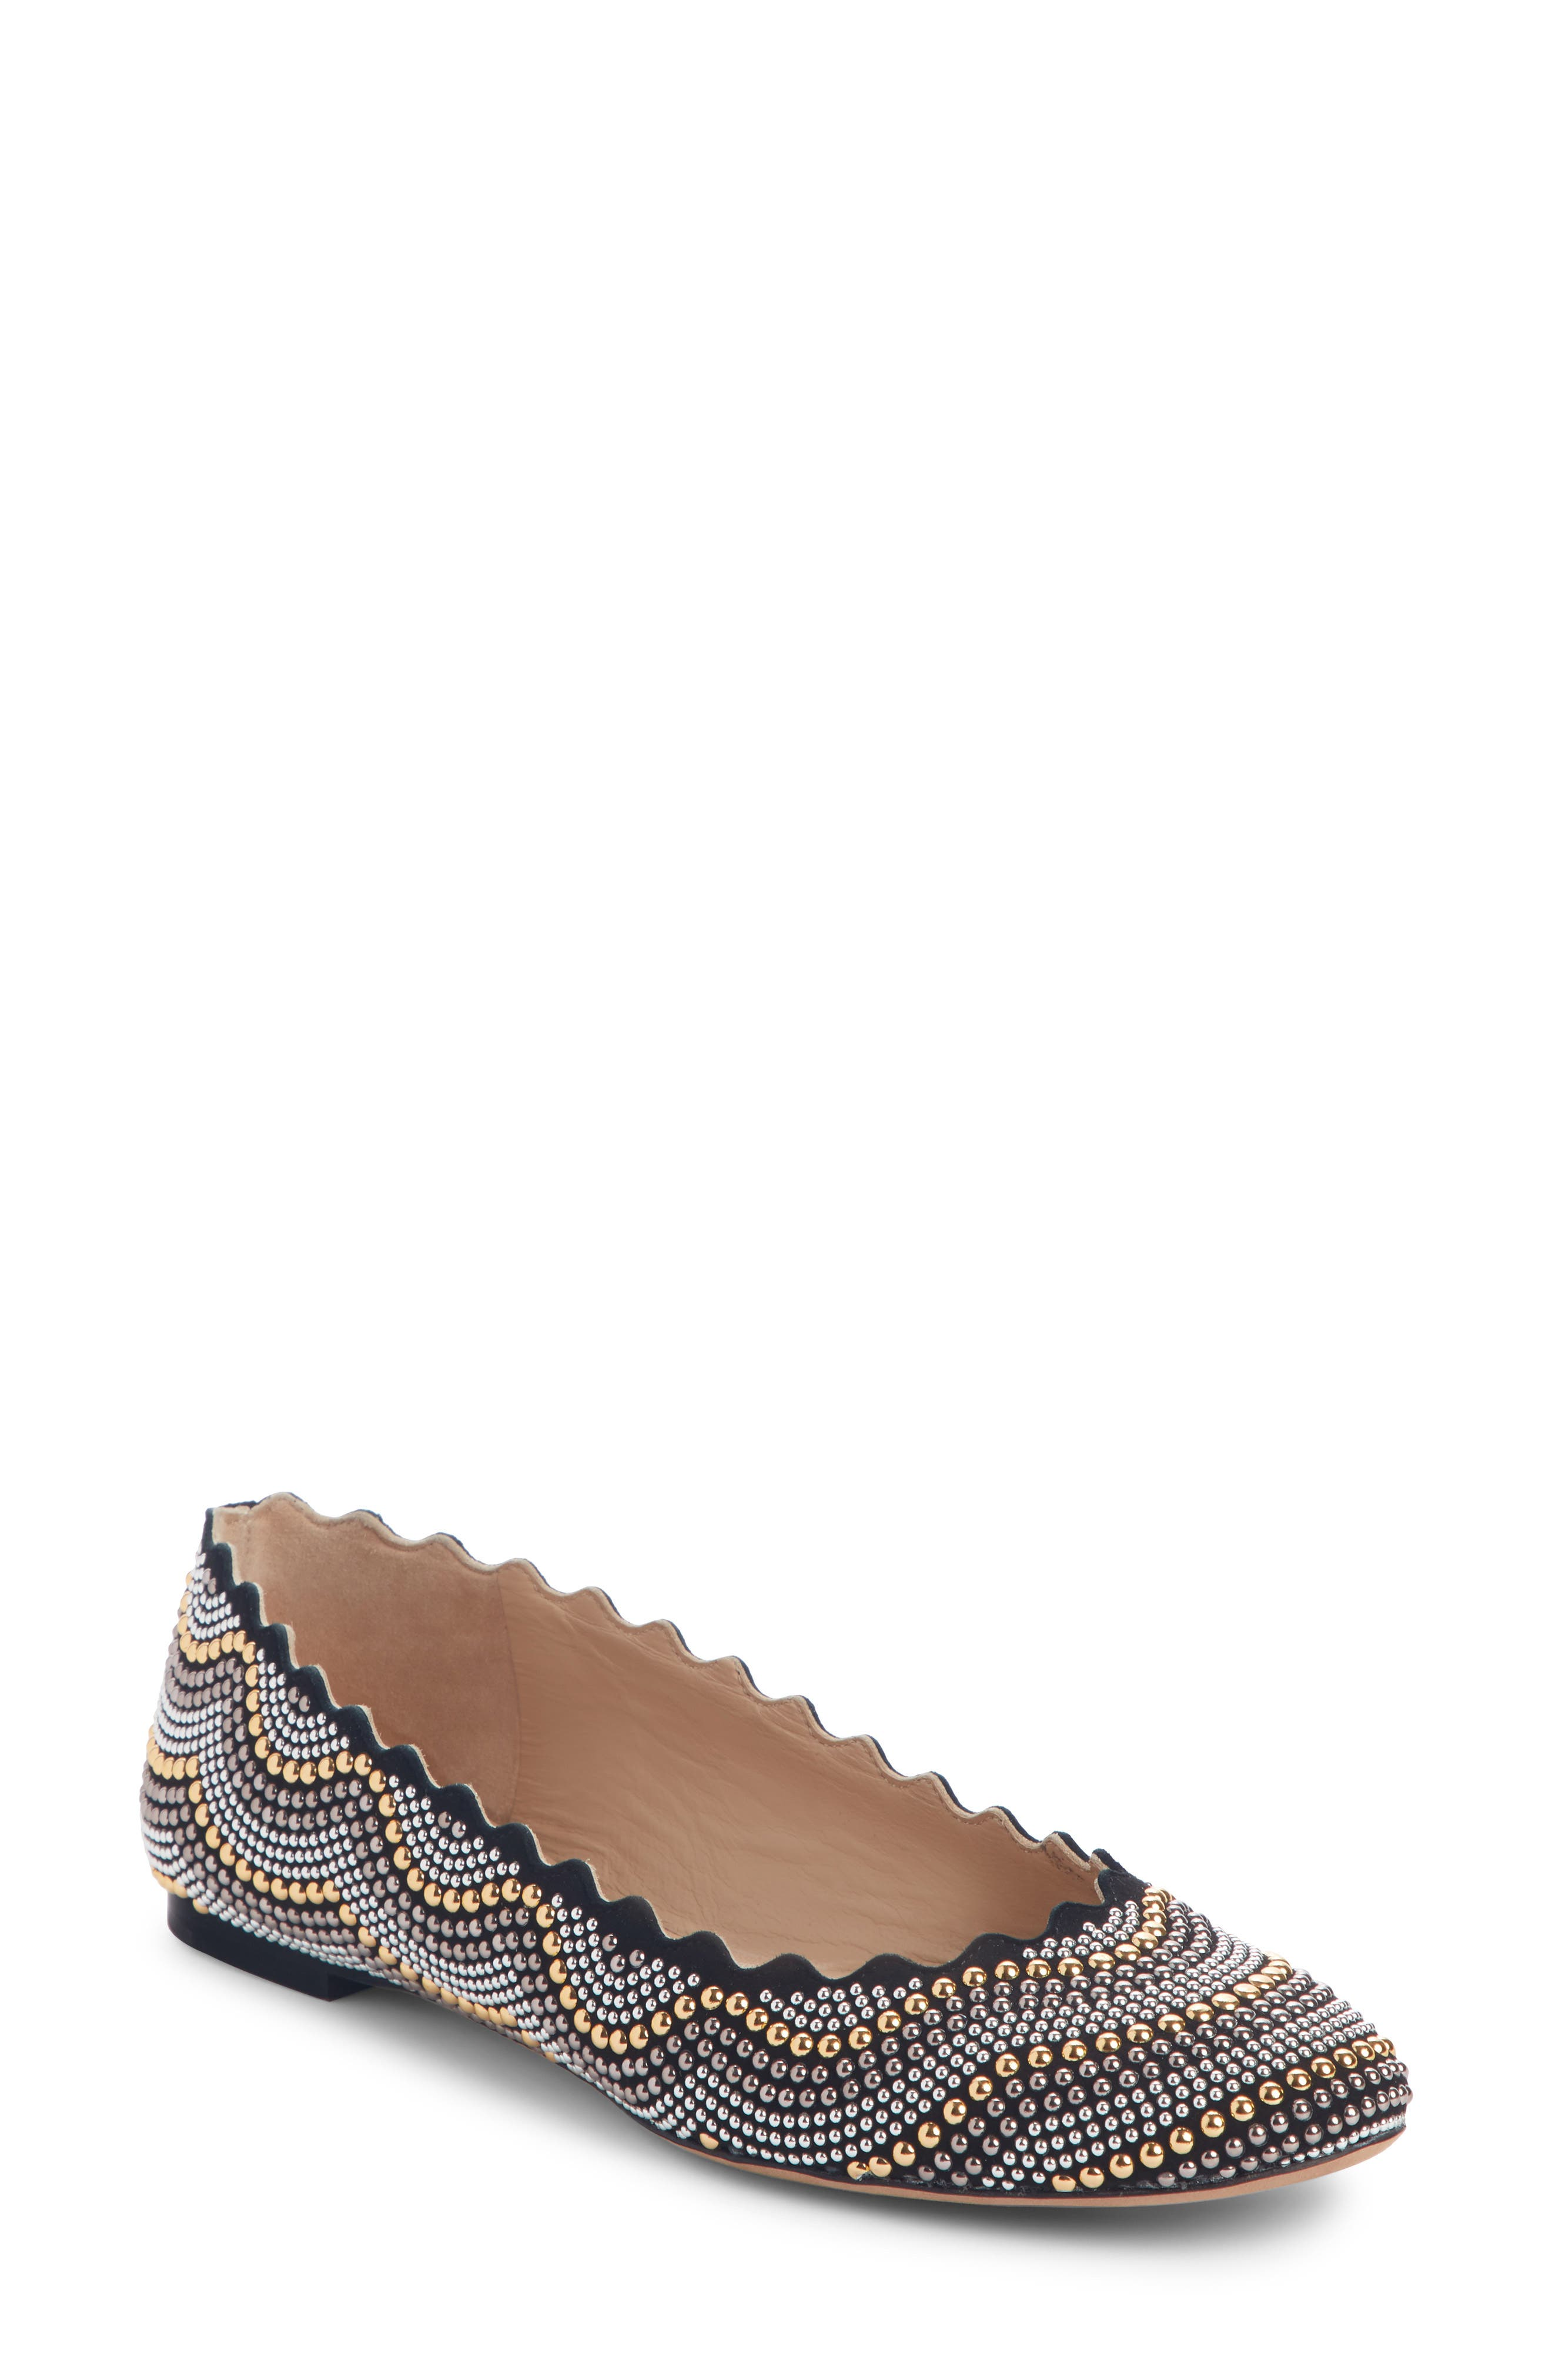 Lauren Scalloped Studded Ballet Flat, Main, color, BLACK